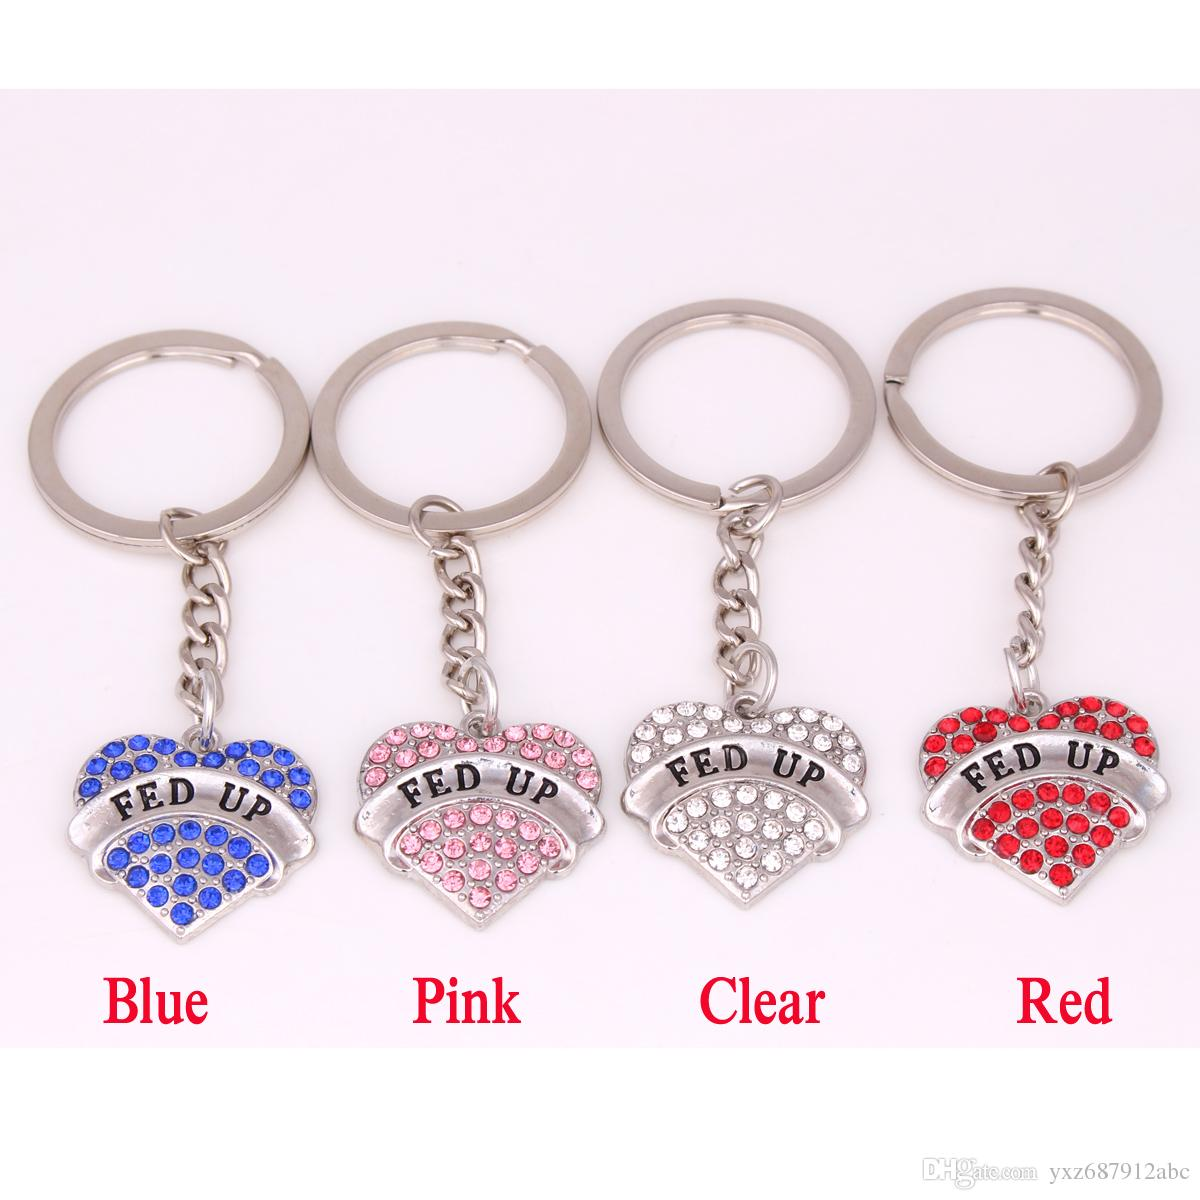 Apricot Fu Hot Seling FED UP Studded With Sparkling Crystals Heart Charm Pendent Key Chain Jewelry